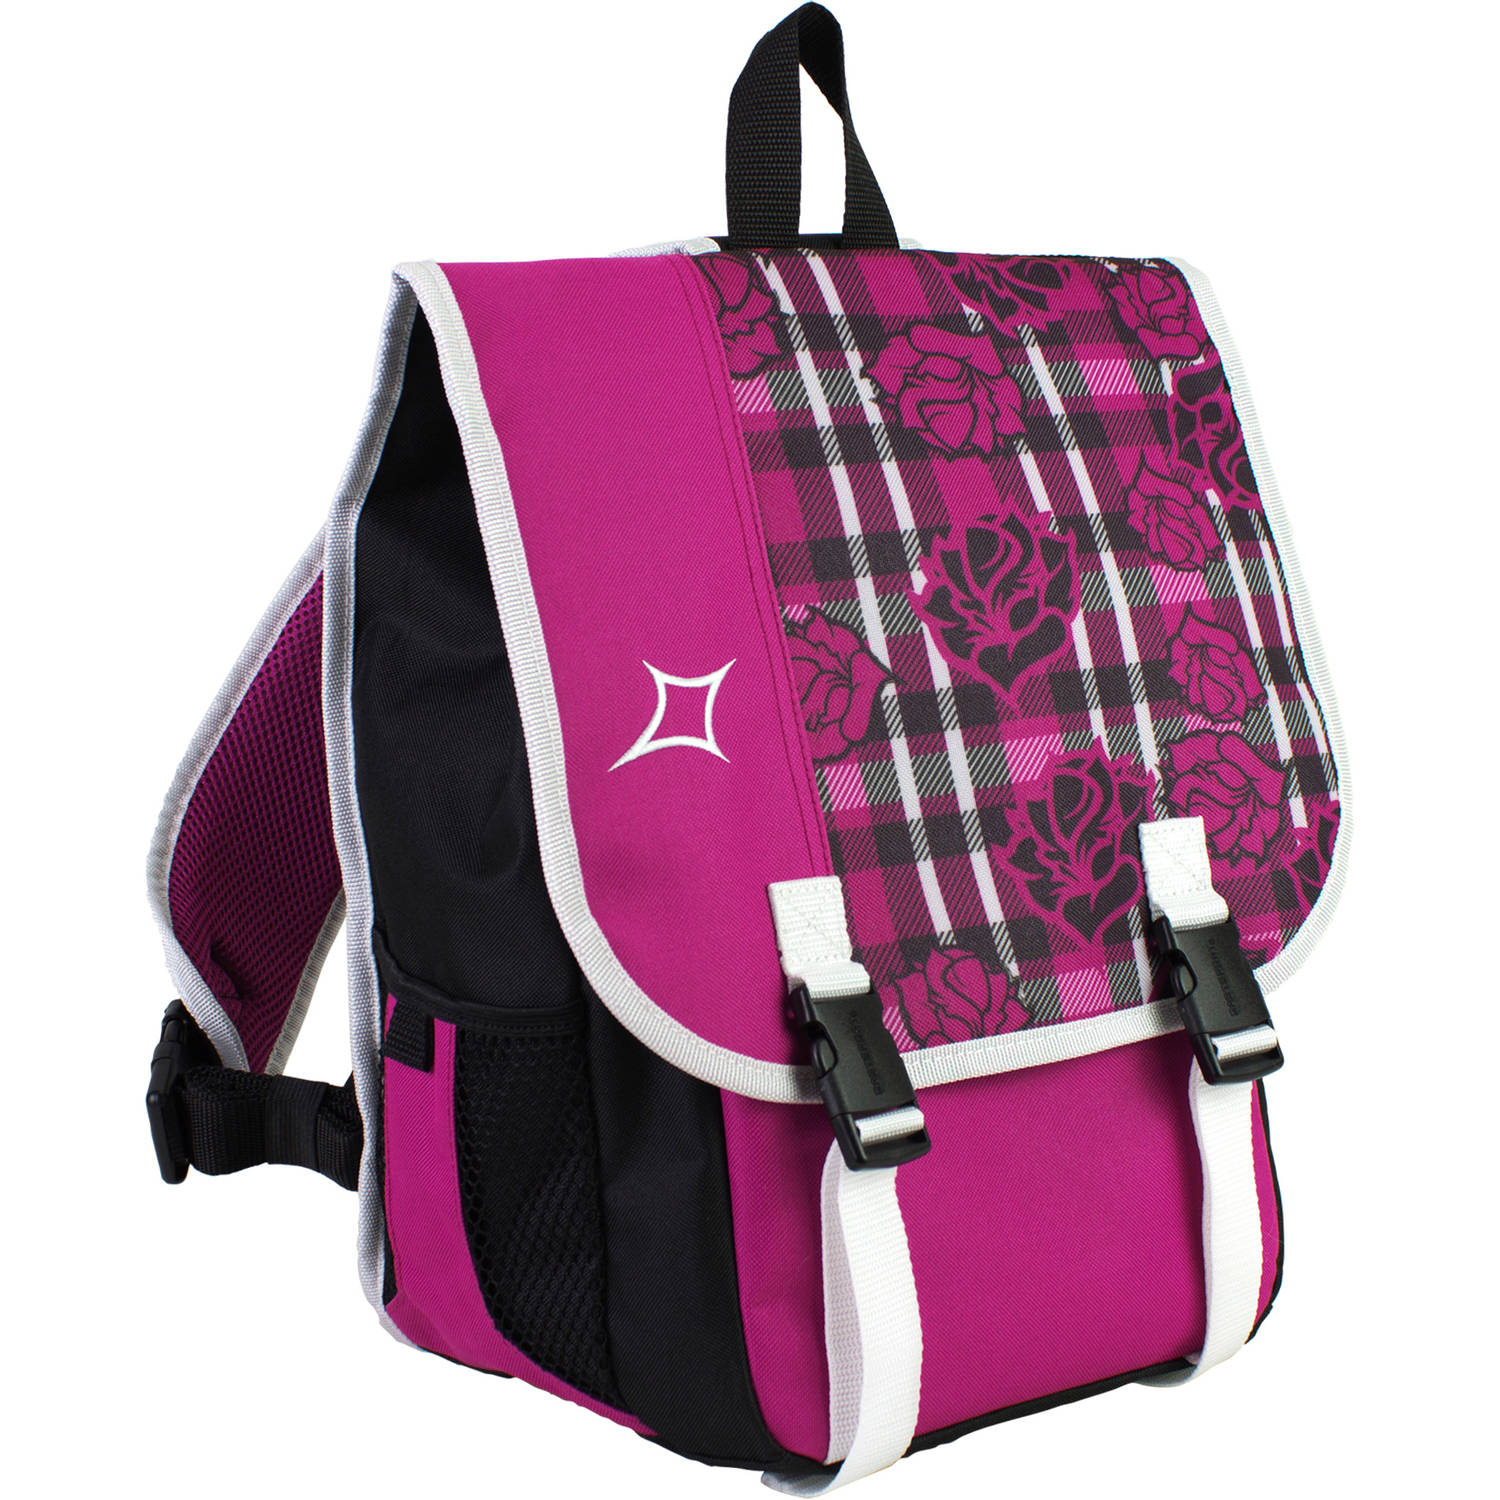 Eastsport Crossbody Backpack